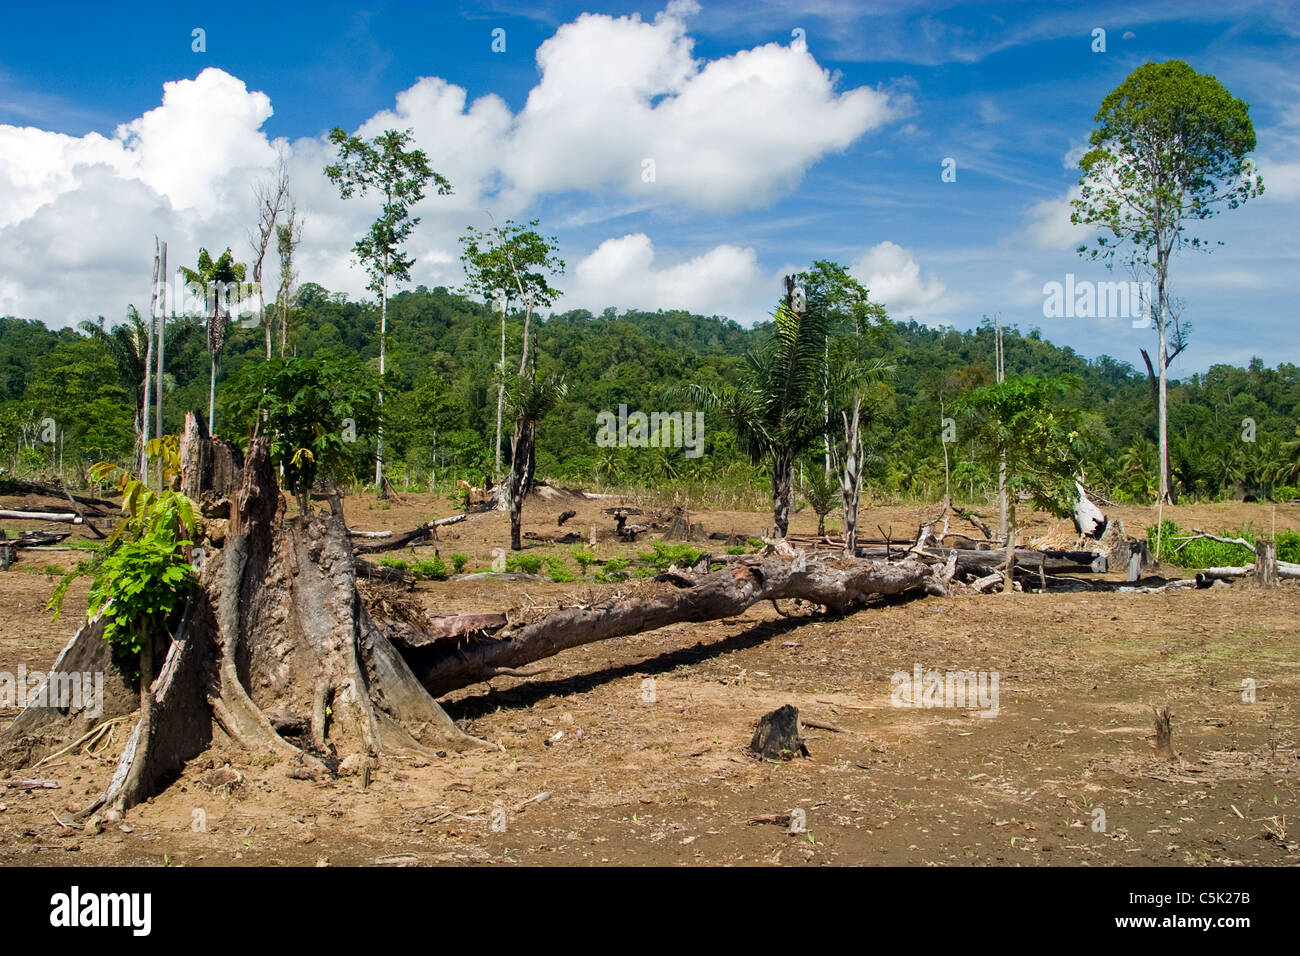 Clear cut forest for agriculture in North Sulawesi Indonesia - Stock Image